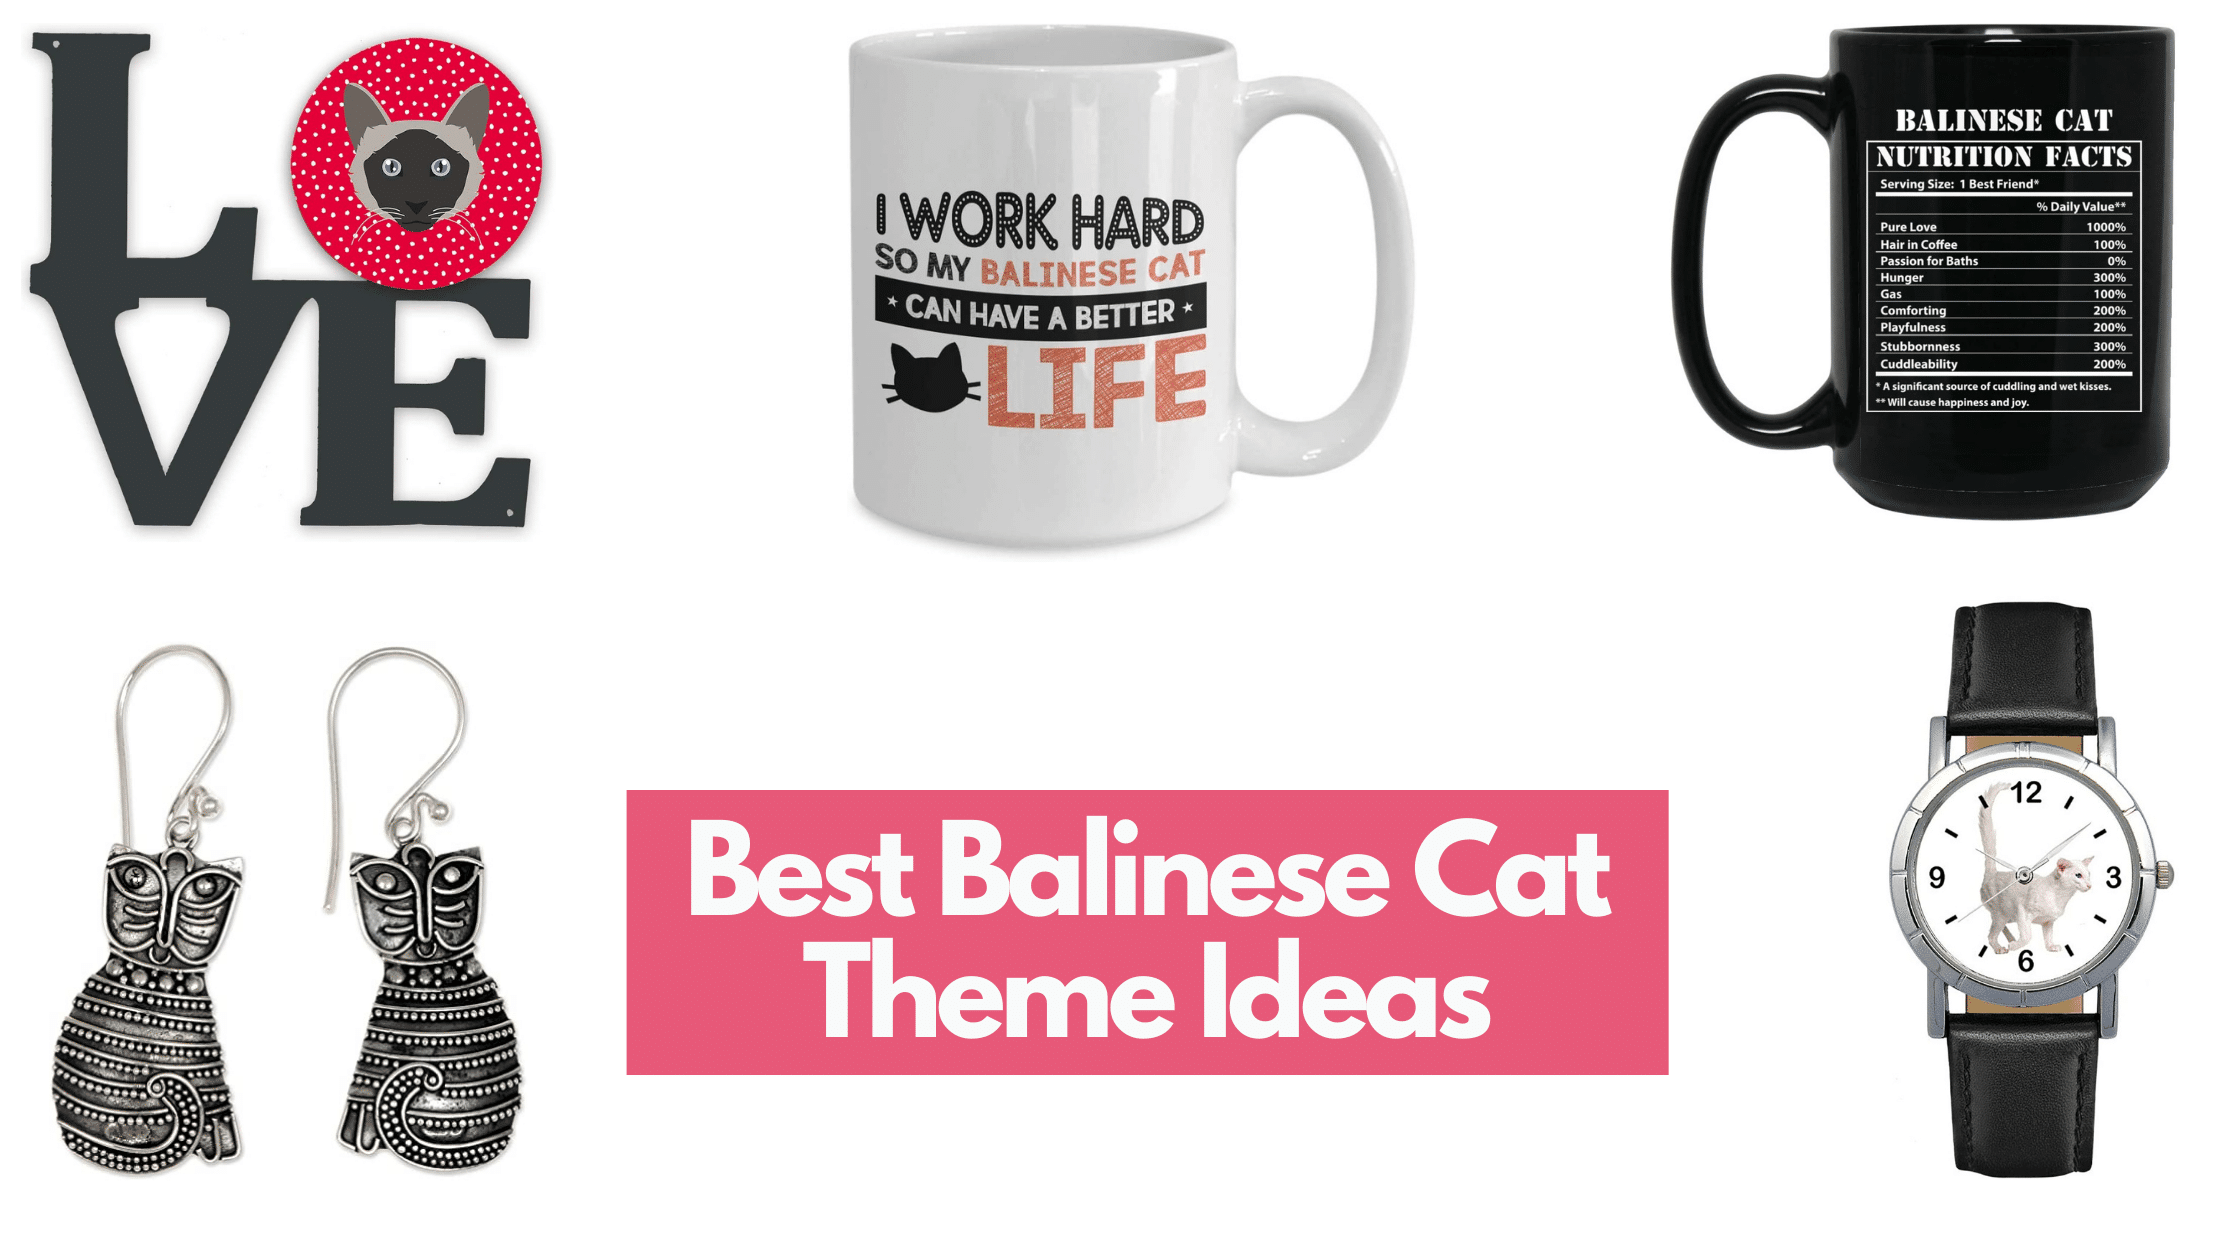 Best Balinese Cat theme